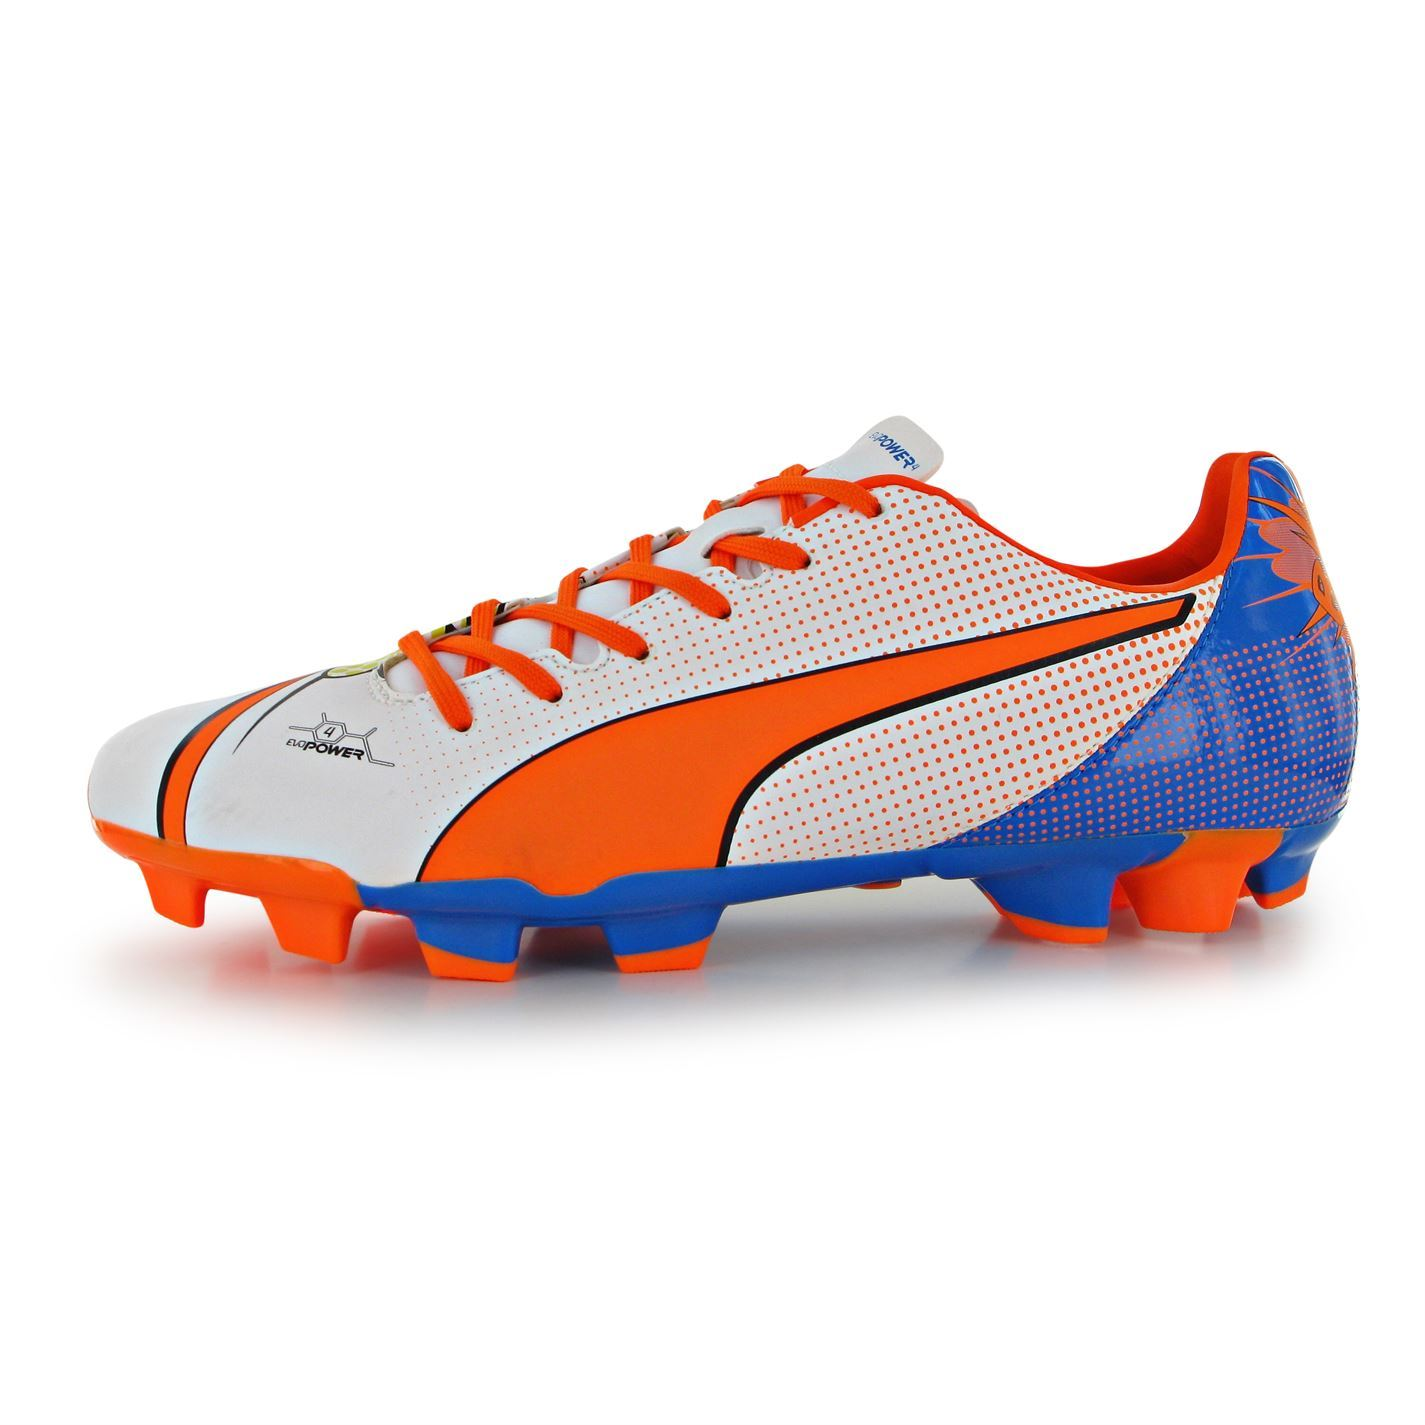 ... Puma EvoPower Pop 4 FG Firm Ground Football Boots Mens White Orn Soccer  Cleats ... 62897c4c8